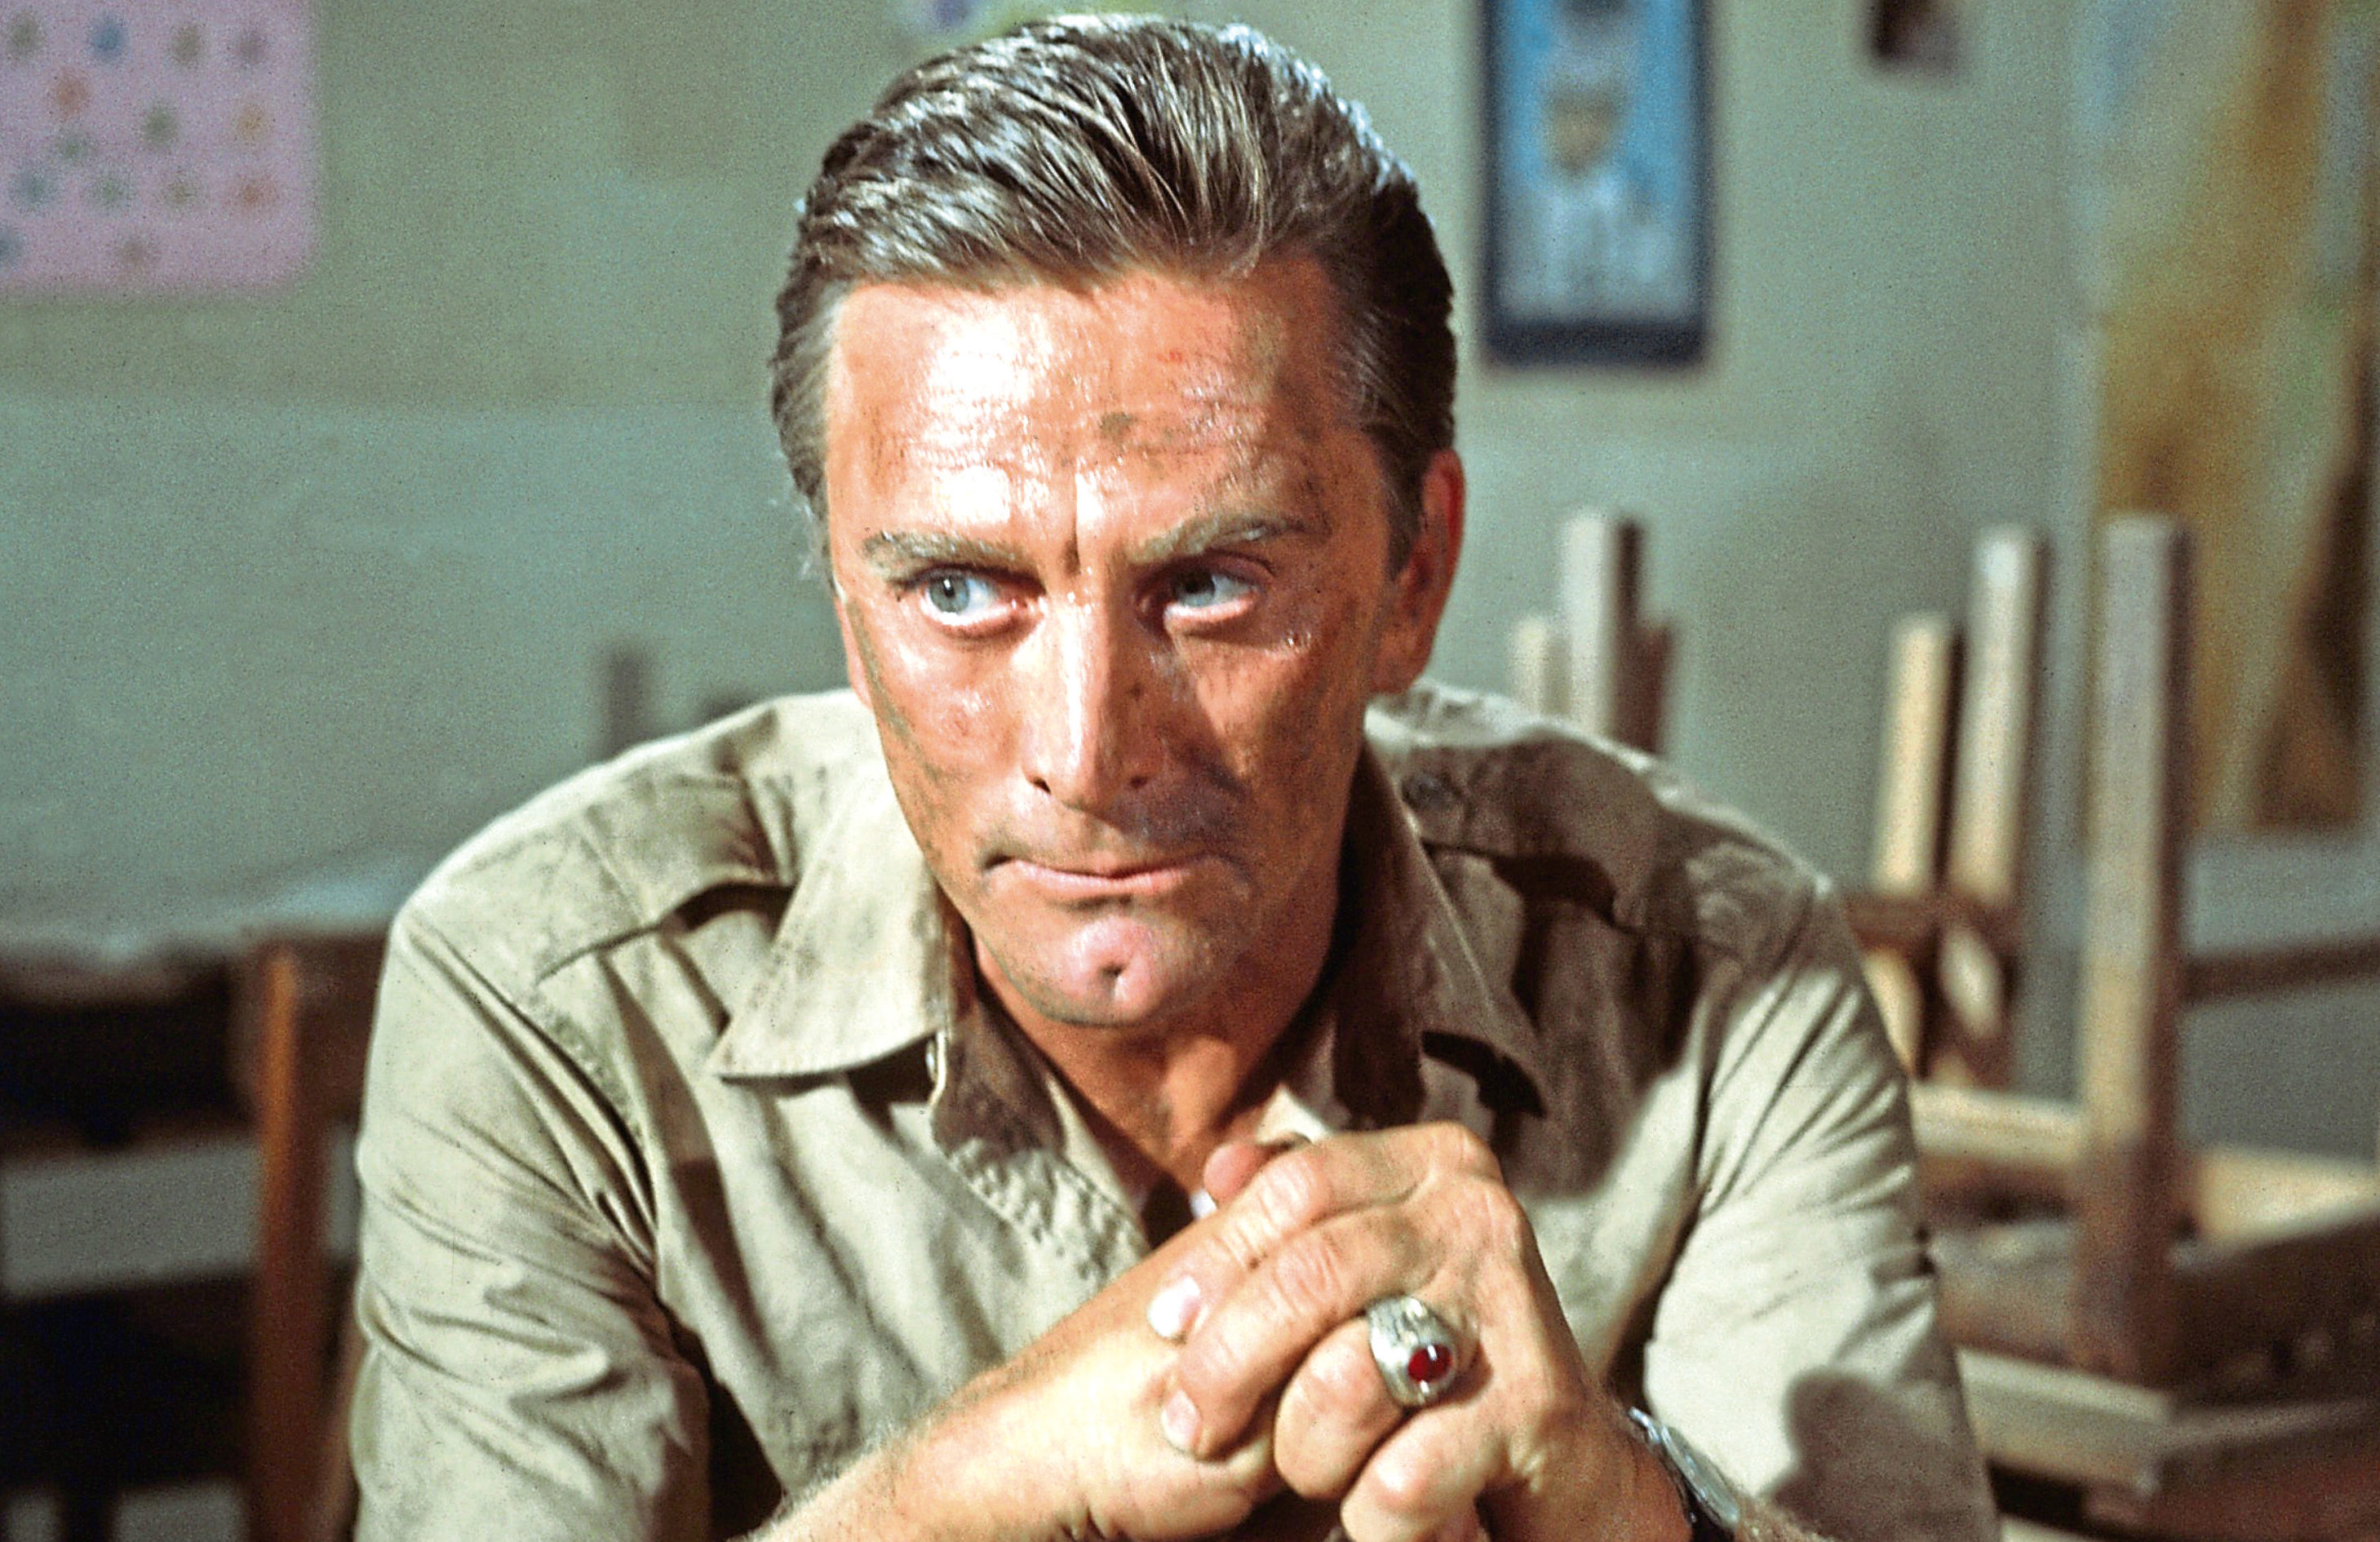 Kirk Douglas in Cast A Giant Shadow, 1966 (Allstar/UNITED ARTISTS)